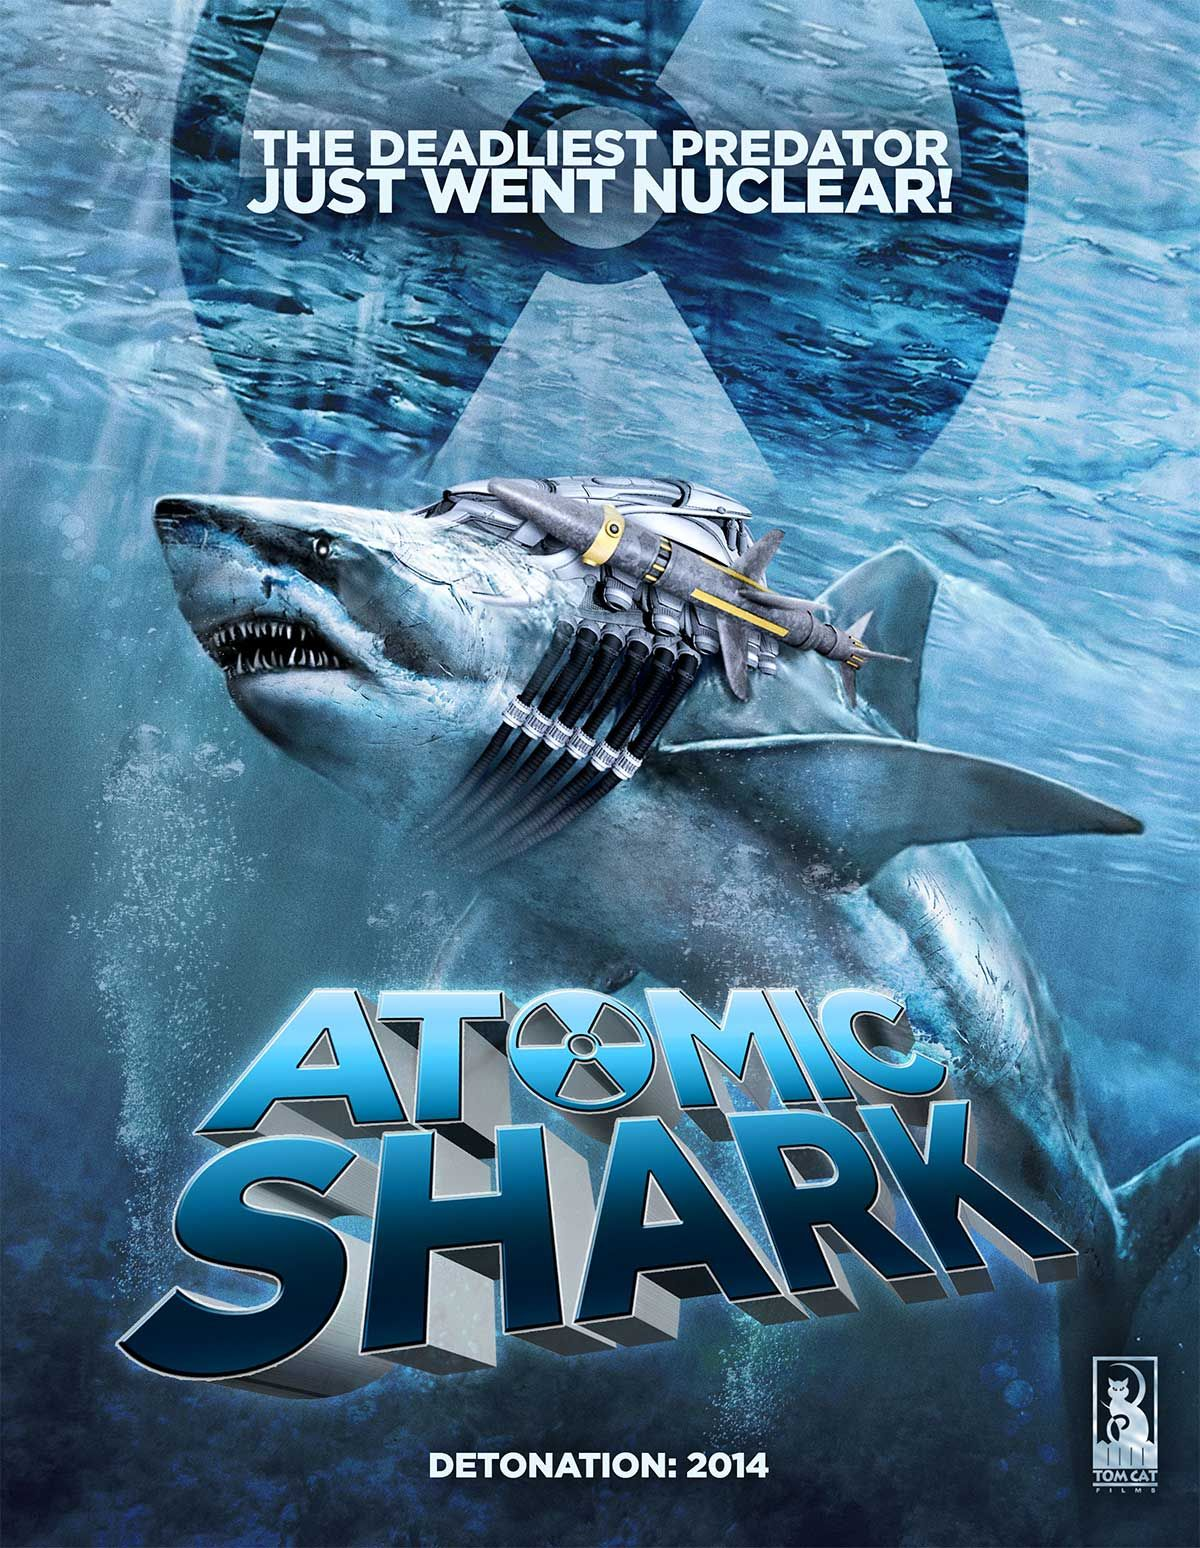 'Atomic Shark' Movie Poster - Hell Horror | Movie Posters | Pinterest | Shark and Horror